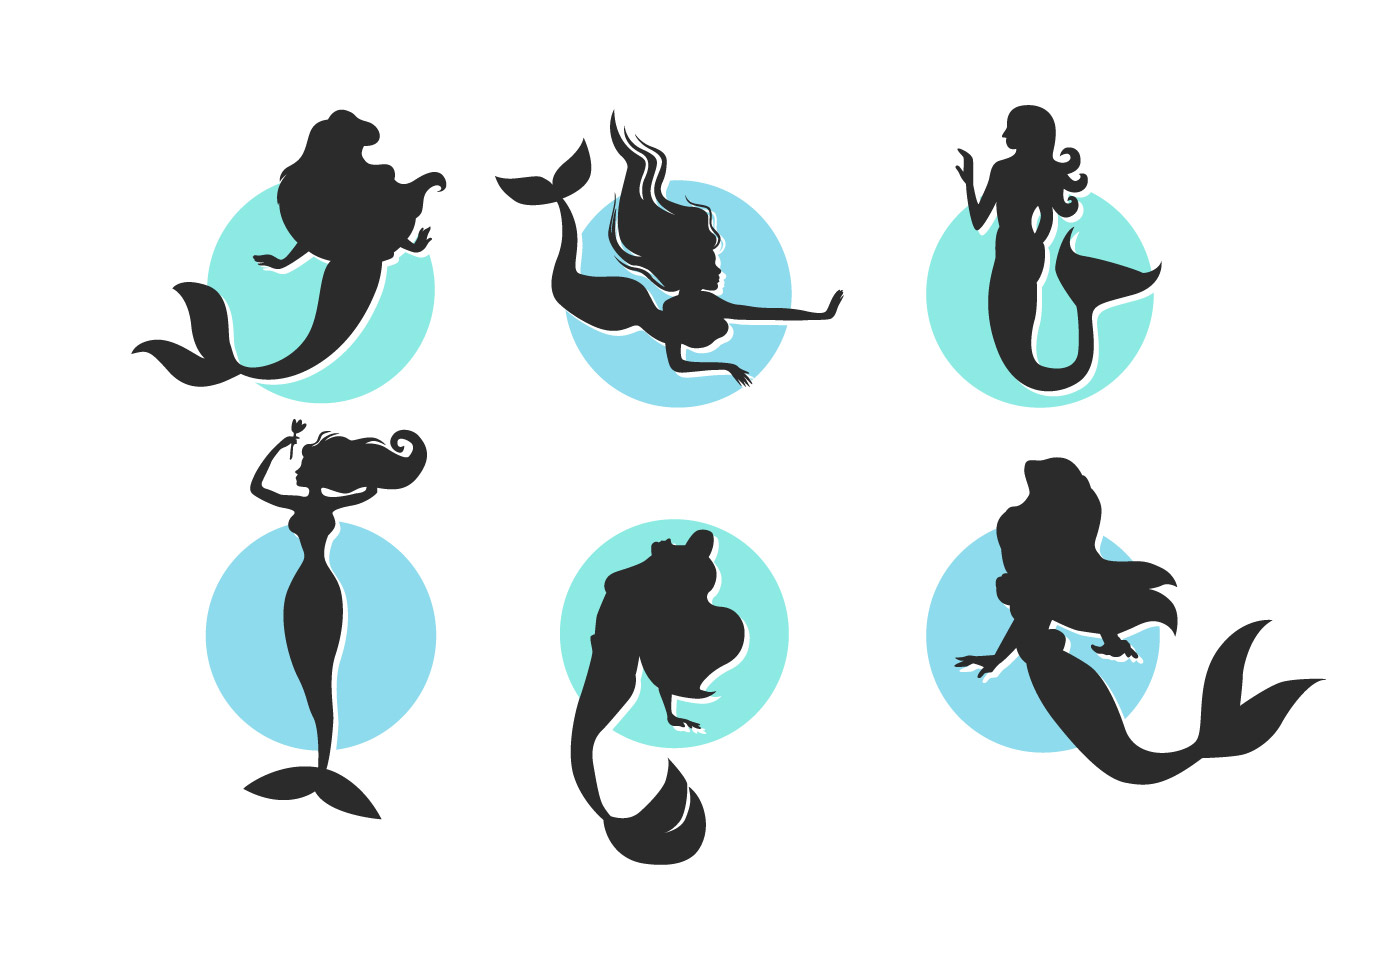 95515 Cartoon Mermaids Vector Silhouettes Illustrations Free Pack 2 on Stock Illustration Fish Silhouette